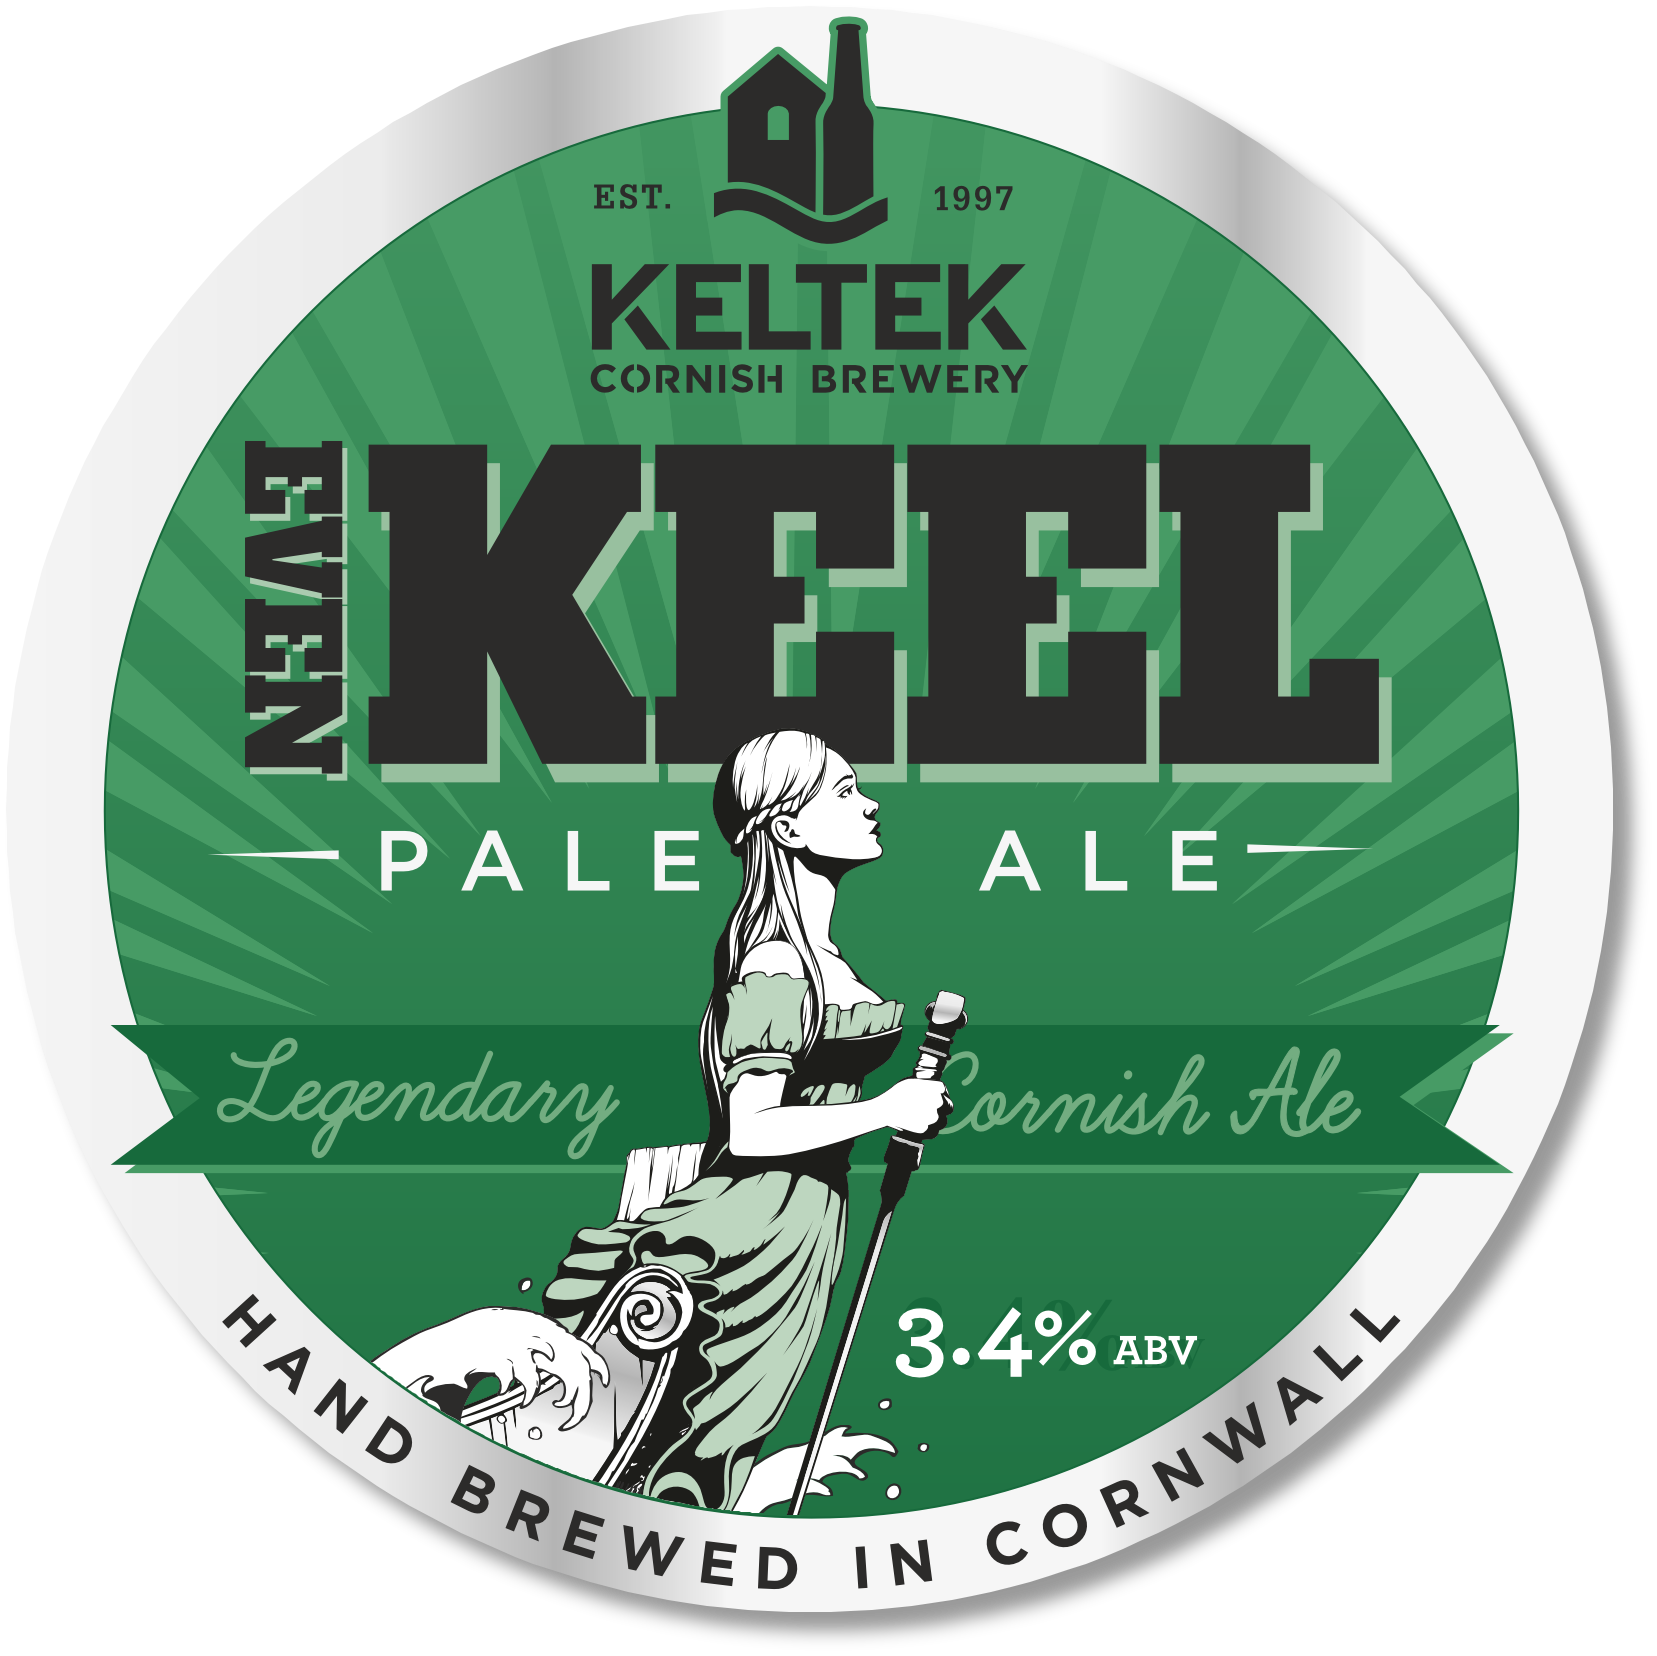 Even Keel 3.4% - A refreshing pale ale with a fruity yet malty first impression, followed by a hint of tangerine with gentle bitterness. Surprisingly long on the palate for a lower gravity beer. Taste of the West Silver Award Winner.